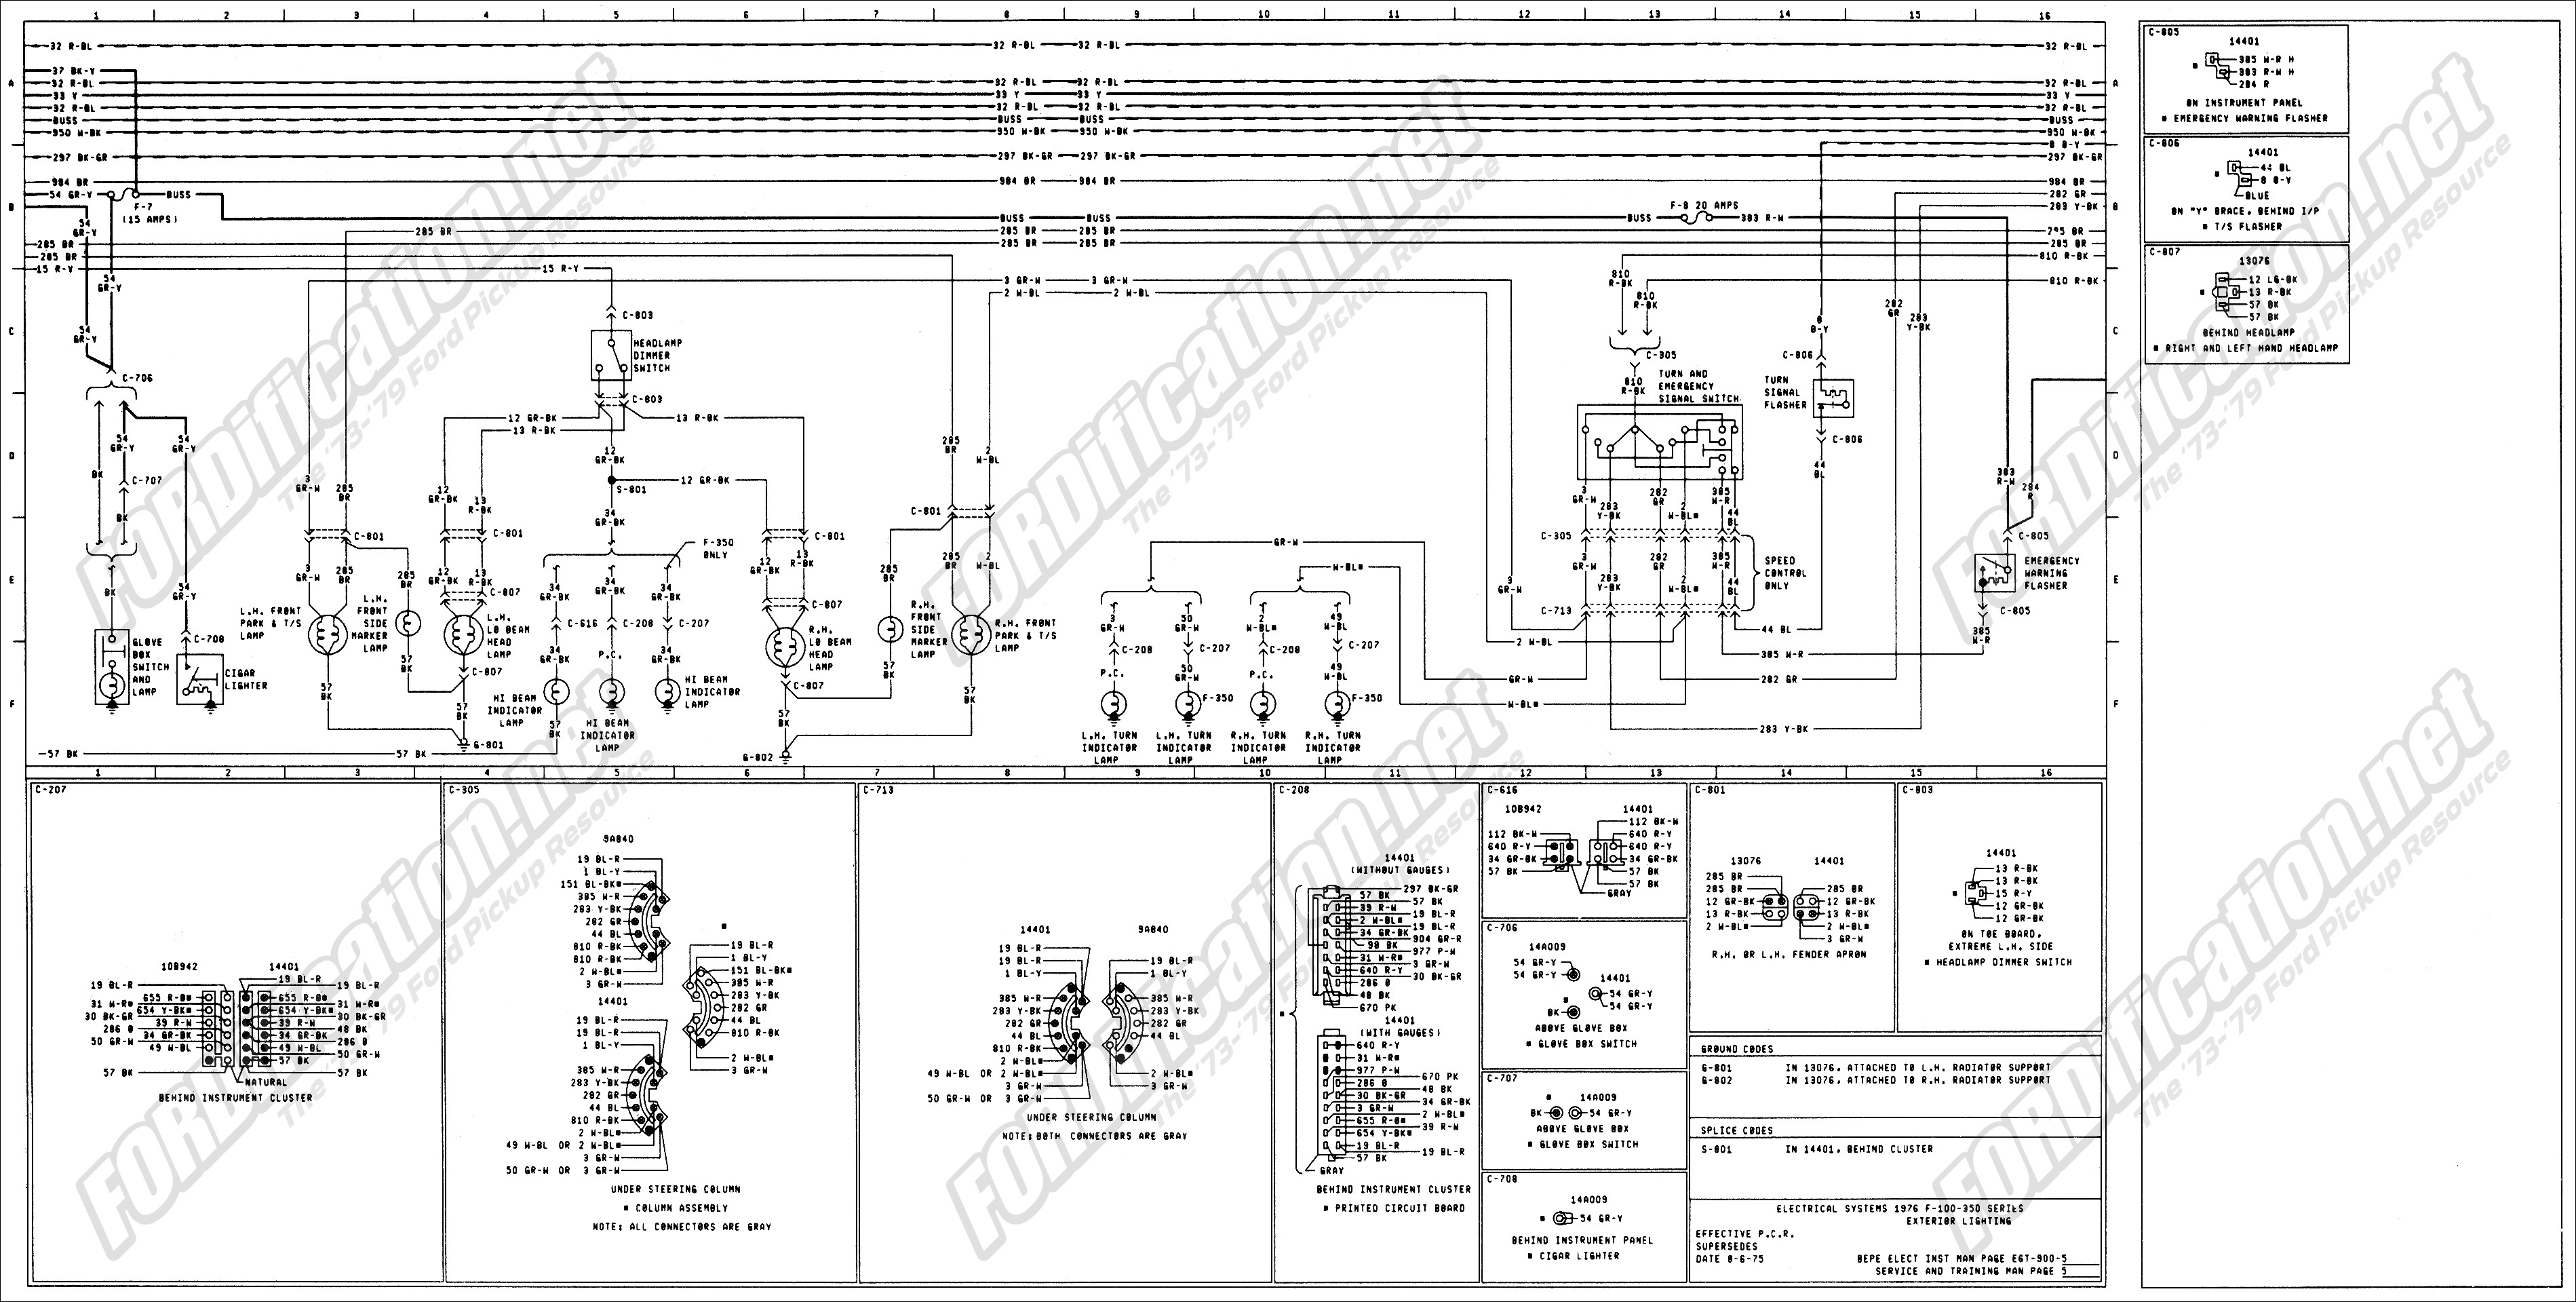 1977 ford f100 wiring harness - wiring diagrams pale-manage -  pale-manage.alcuoredeldiabete.it  al cuore del diabete